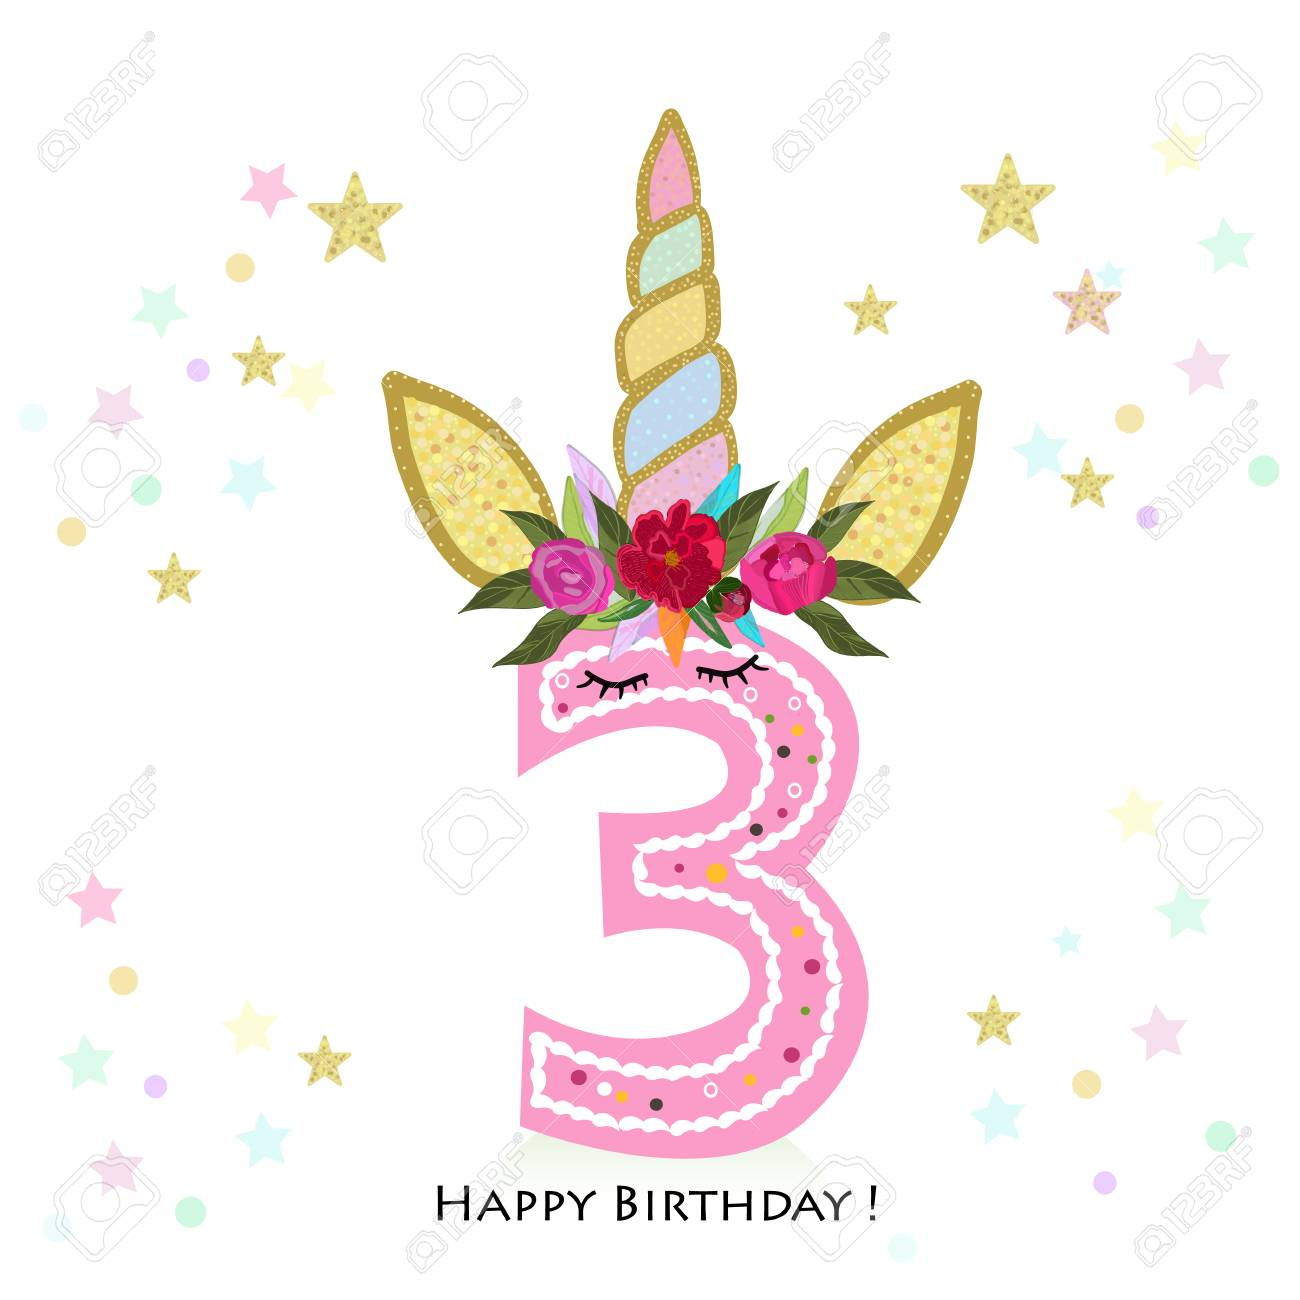 Birthday Greeting Card Design For 3 Year Old Template Stock Vector